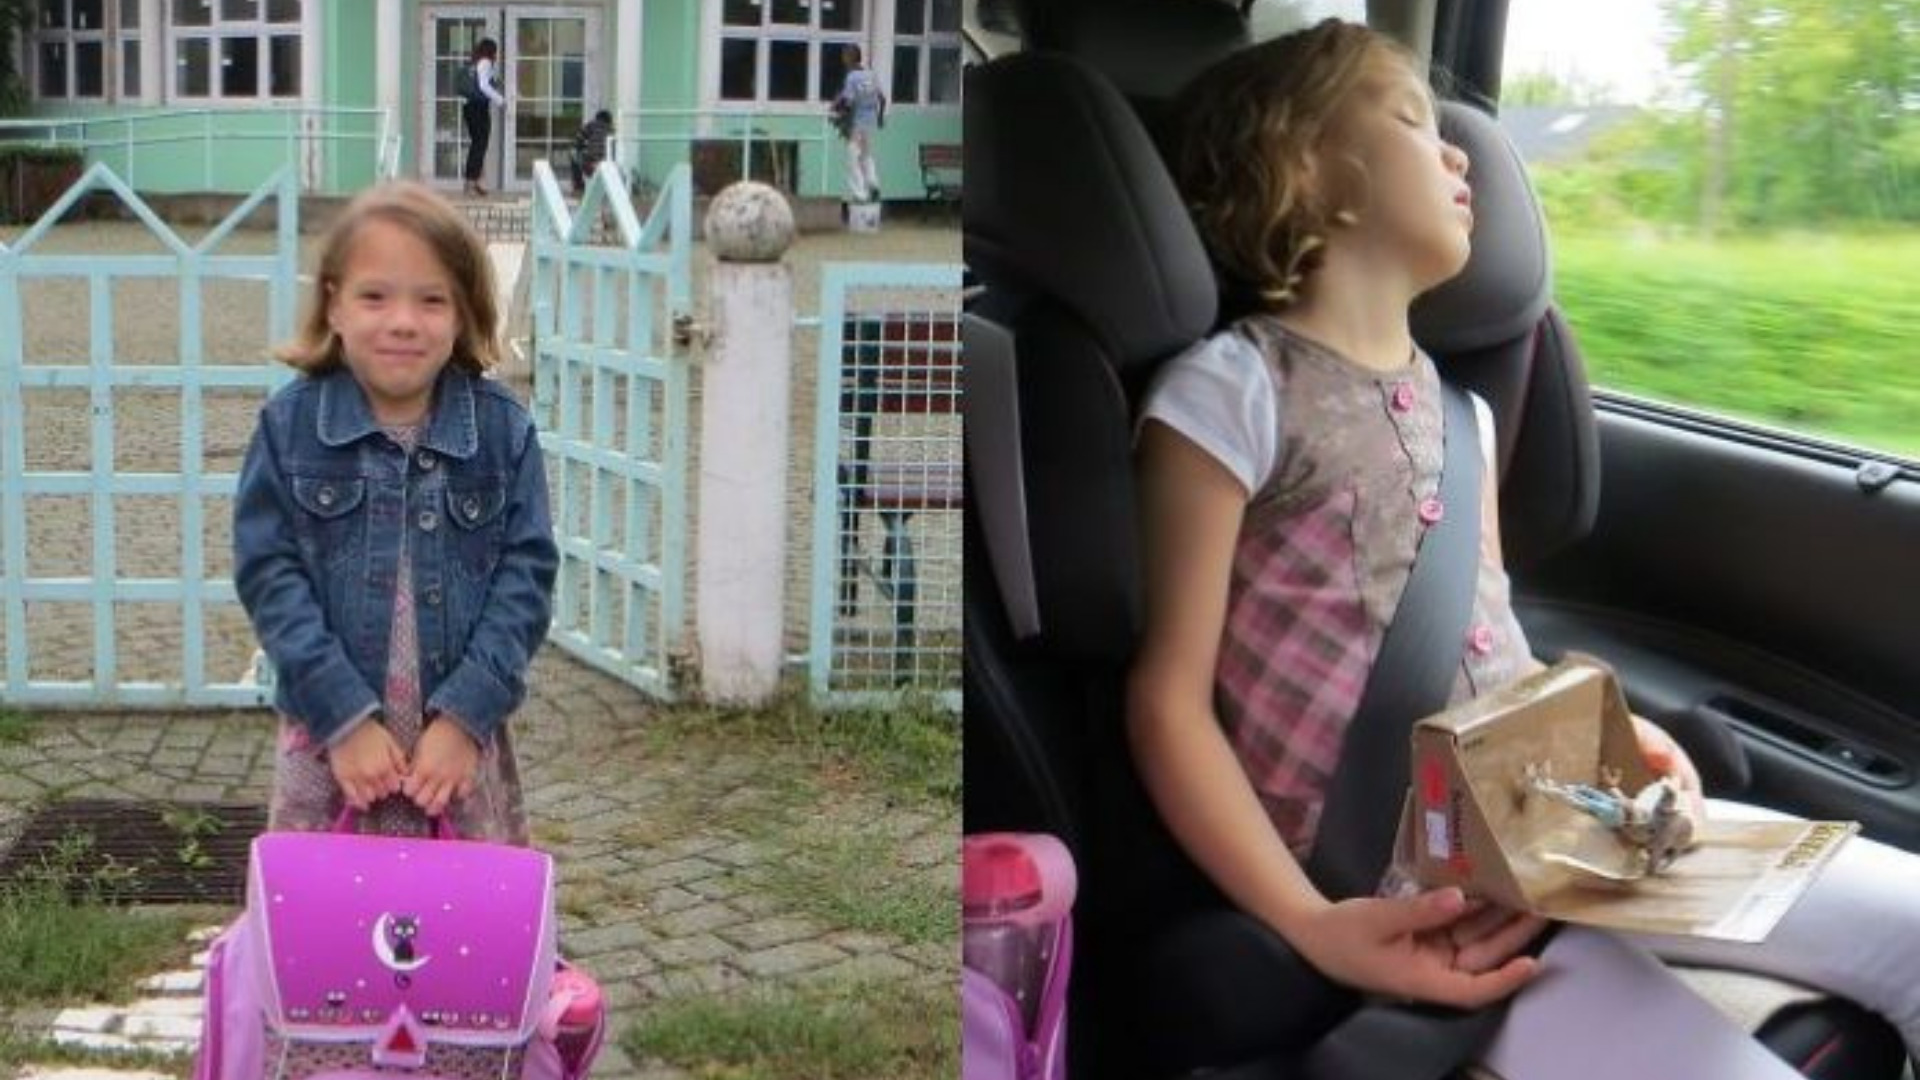 Interesting before and after photos of children on their first day at school